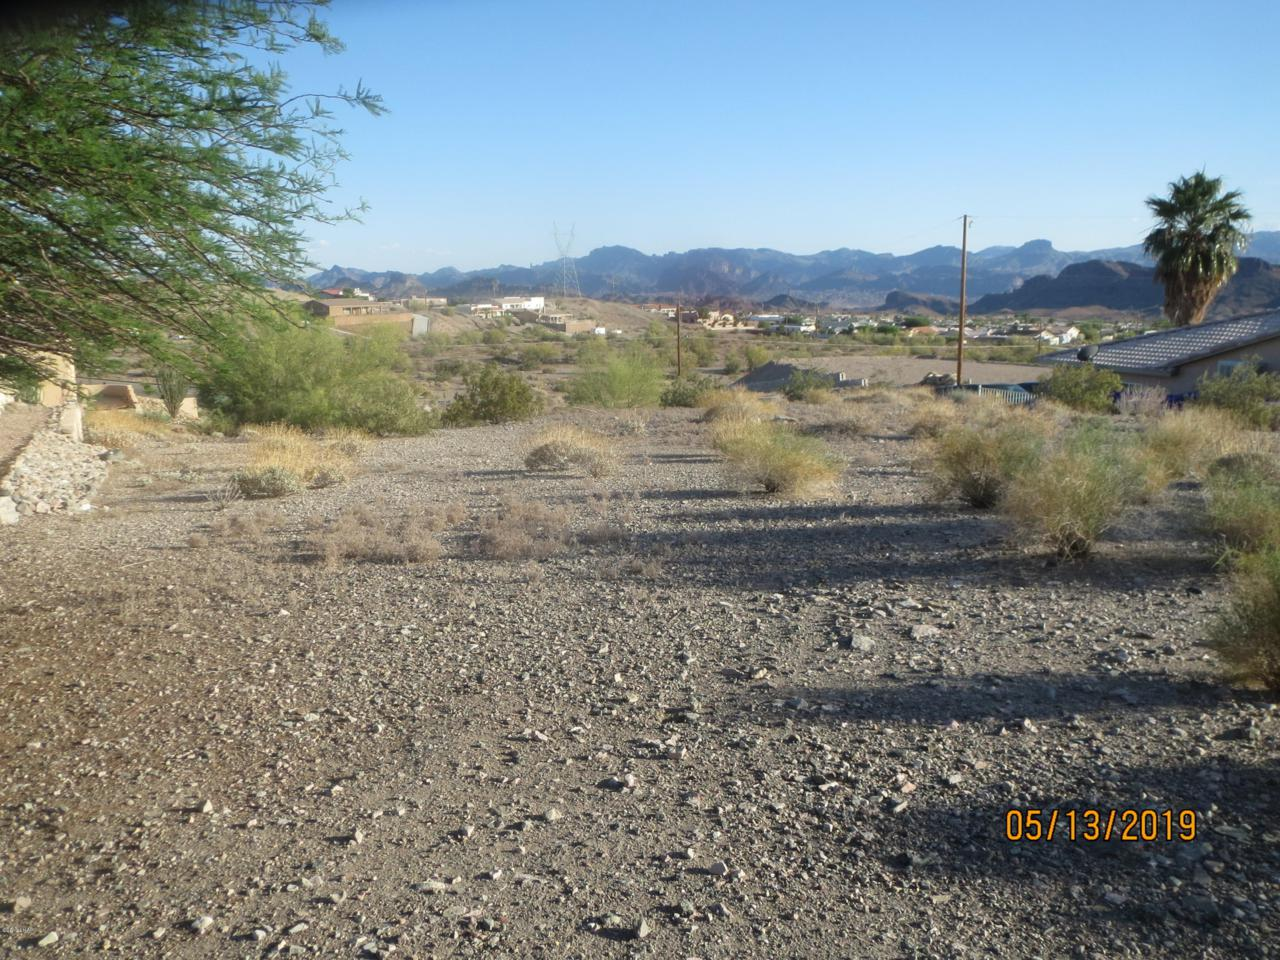 https://bt-photos.global.ssl.fastly.net/lakehavasu/1280_boomver_1_1006570-2.jpg